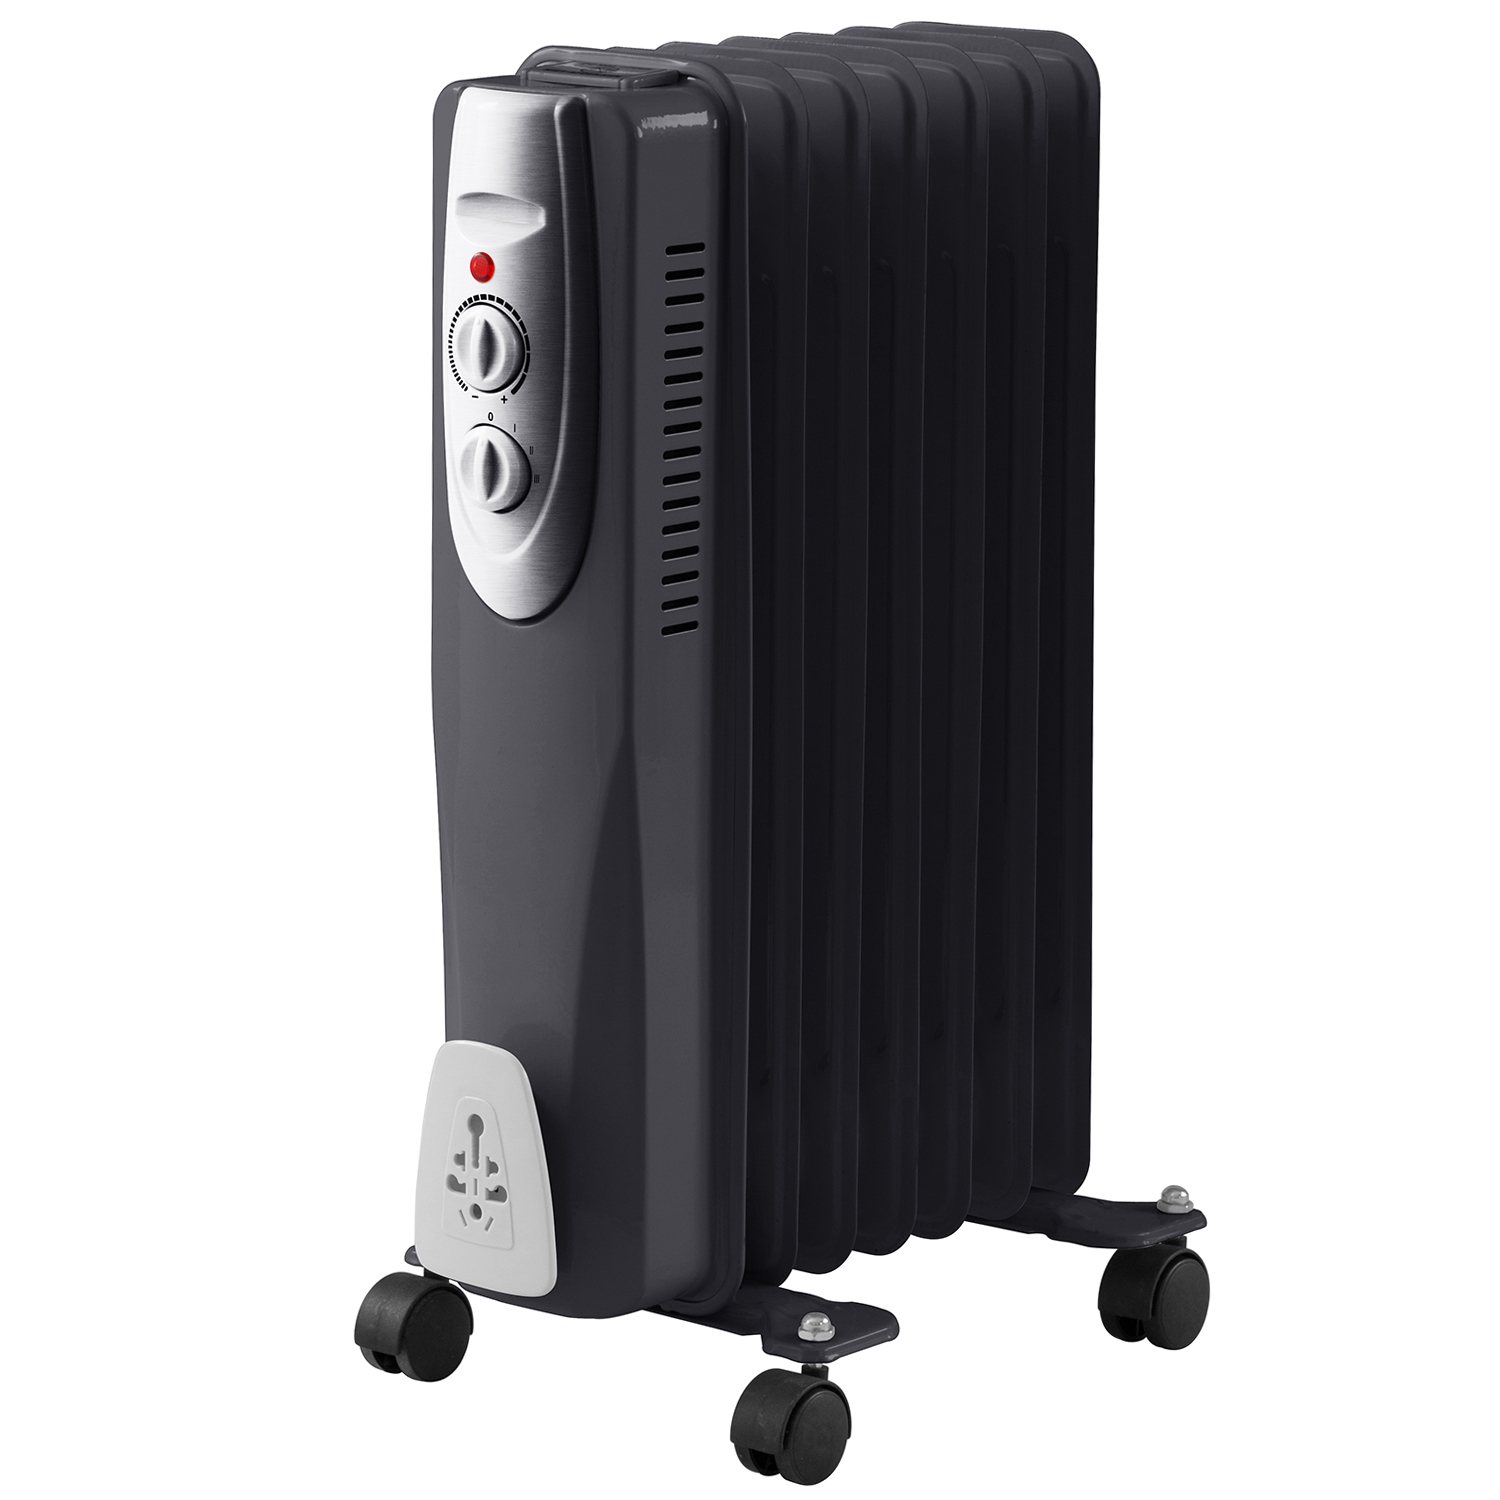 7 Fin 1500w Oil Filled Radiator Heater 1 5kw Portable